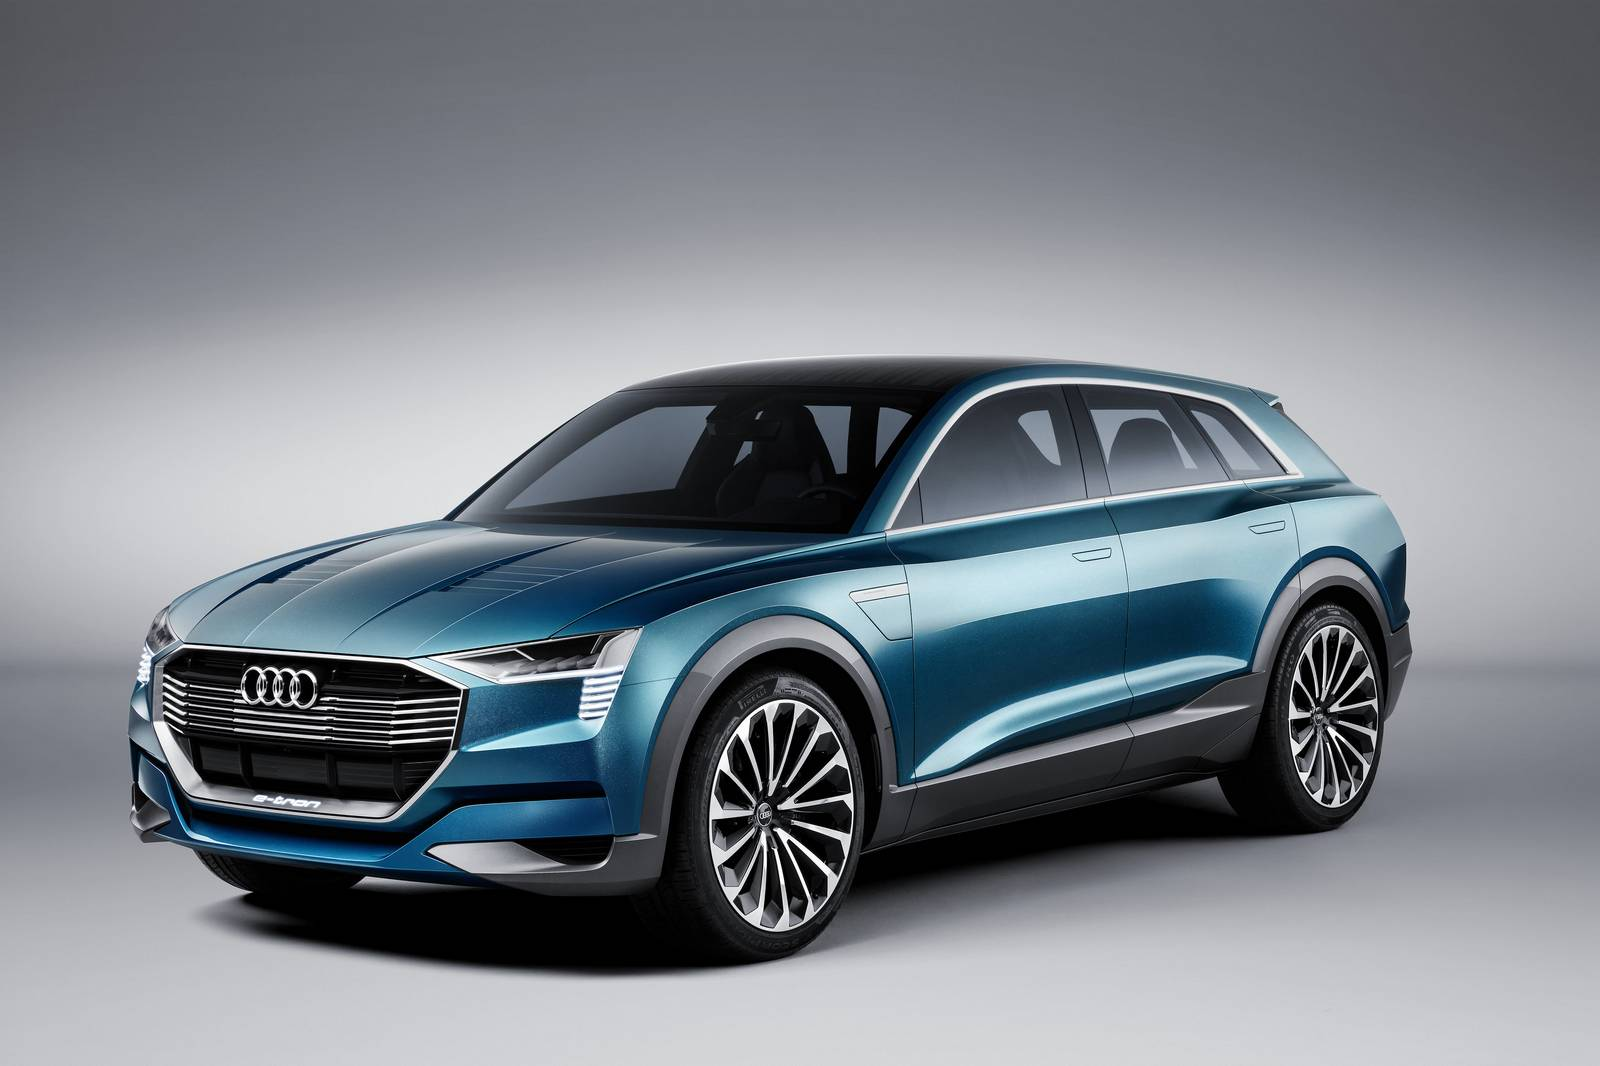 Electric Audi Q6 SUV Could be Produced in Belgium - GTspirit